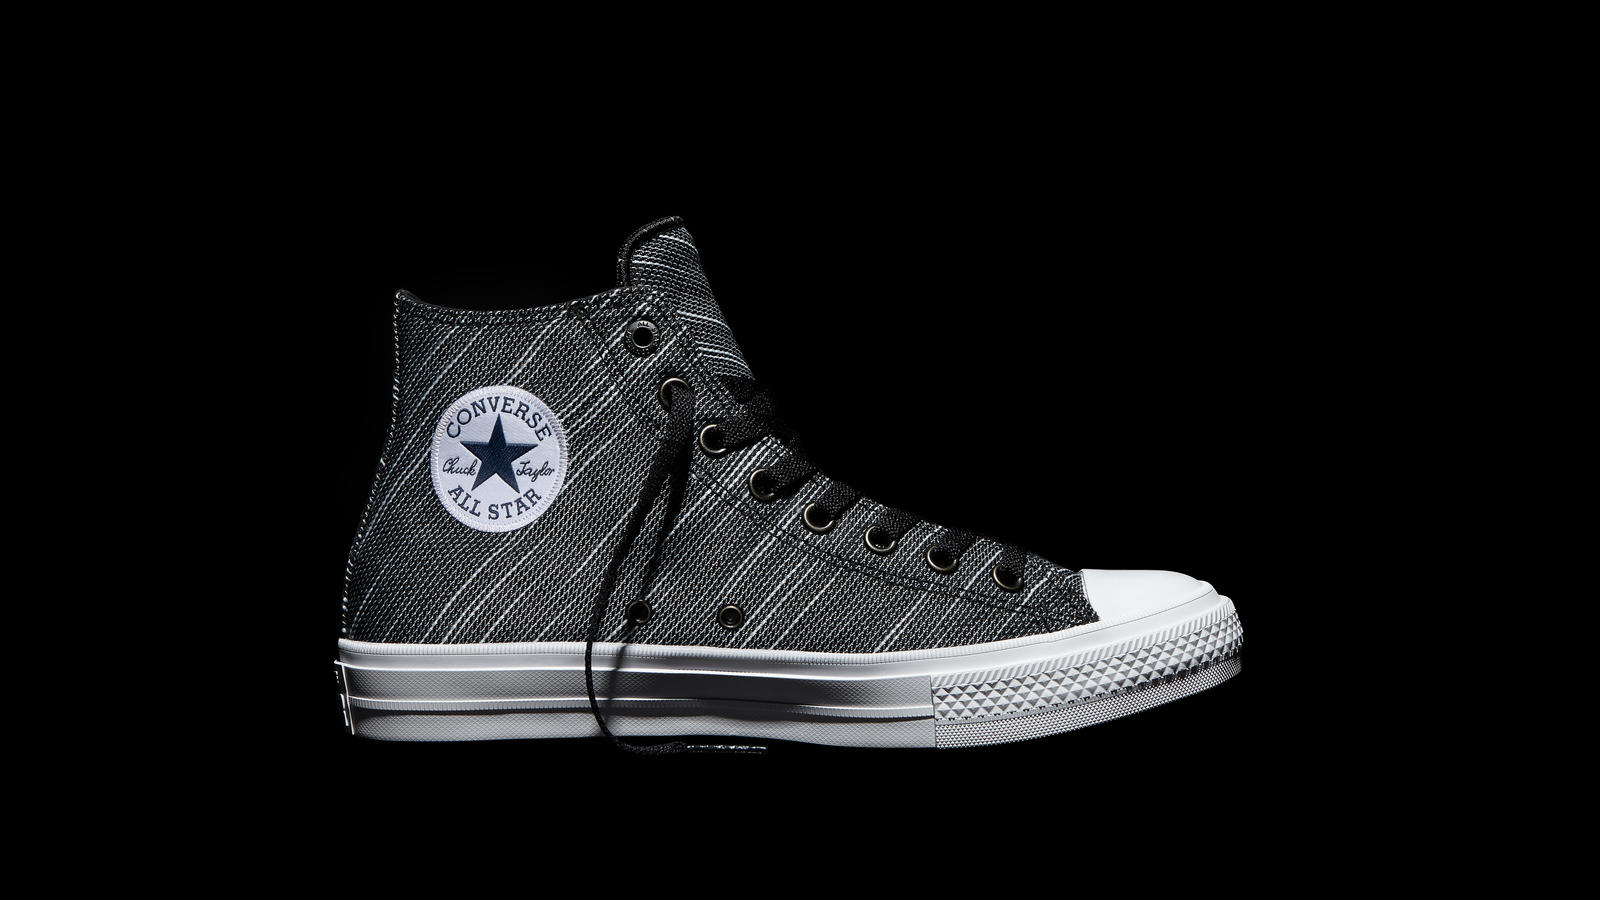 42ac0aed65cb Converse Chuck Taylor All Star Ii Knit Black High Top Original